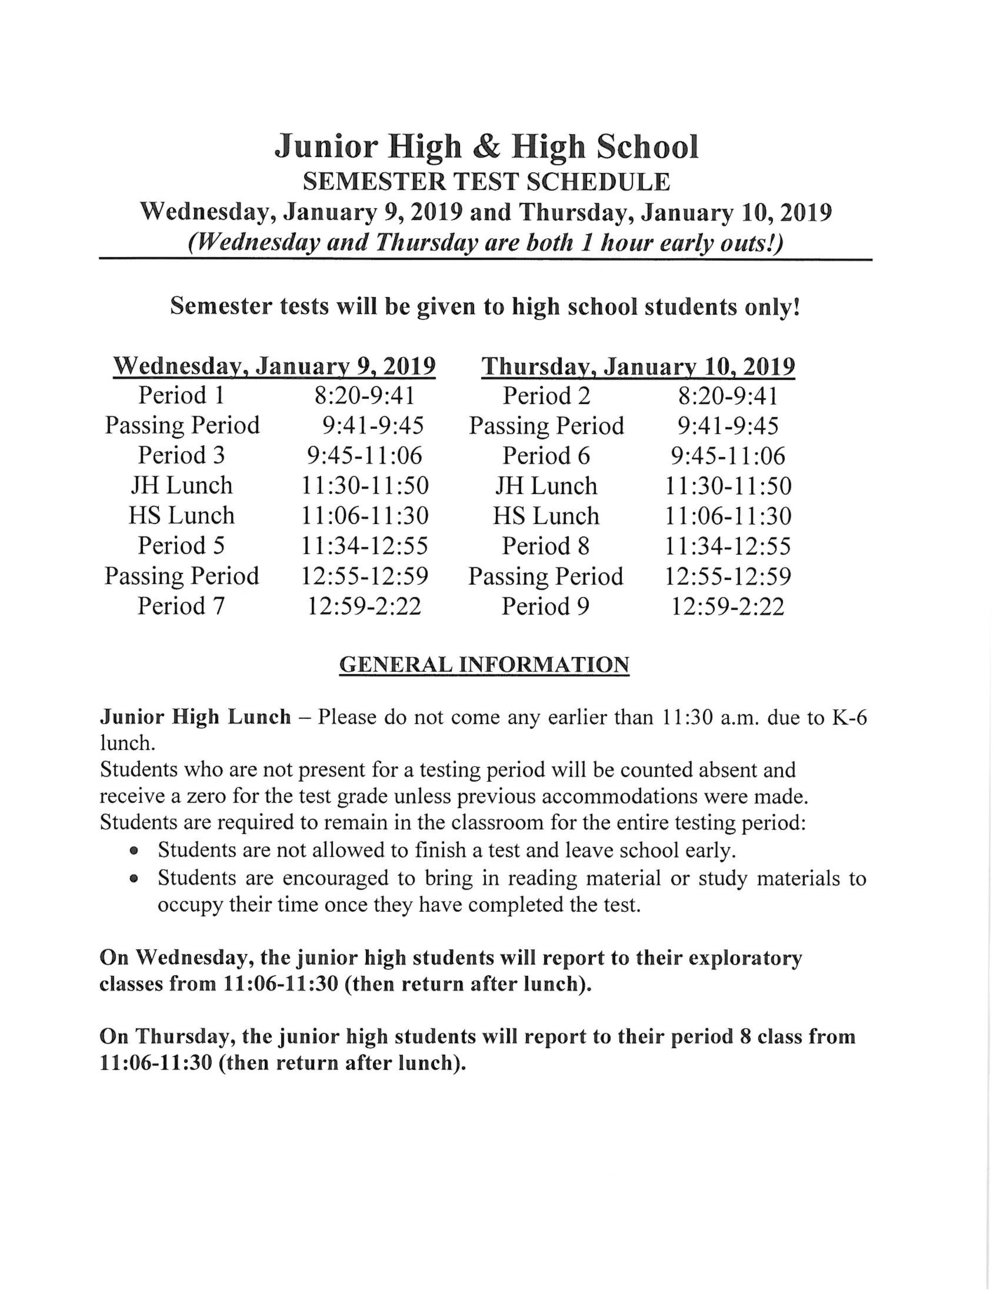 CLICK HERE TO VIEW THE JH/HS SEMESTER TEST SCHEDULE